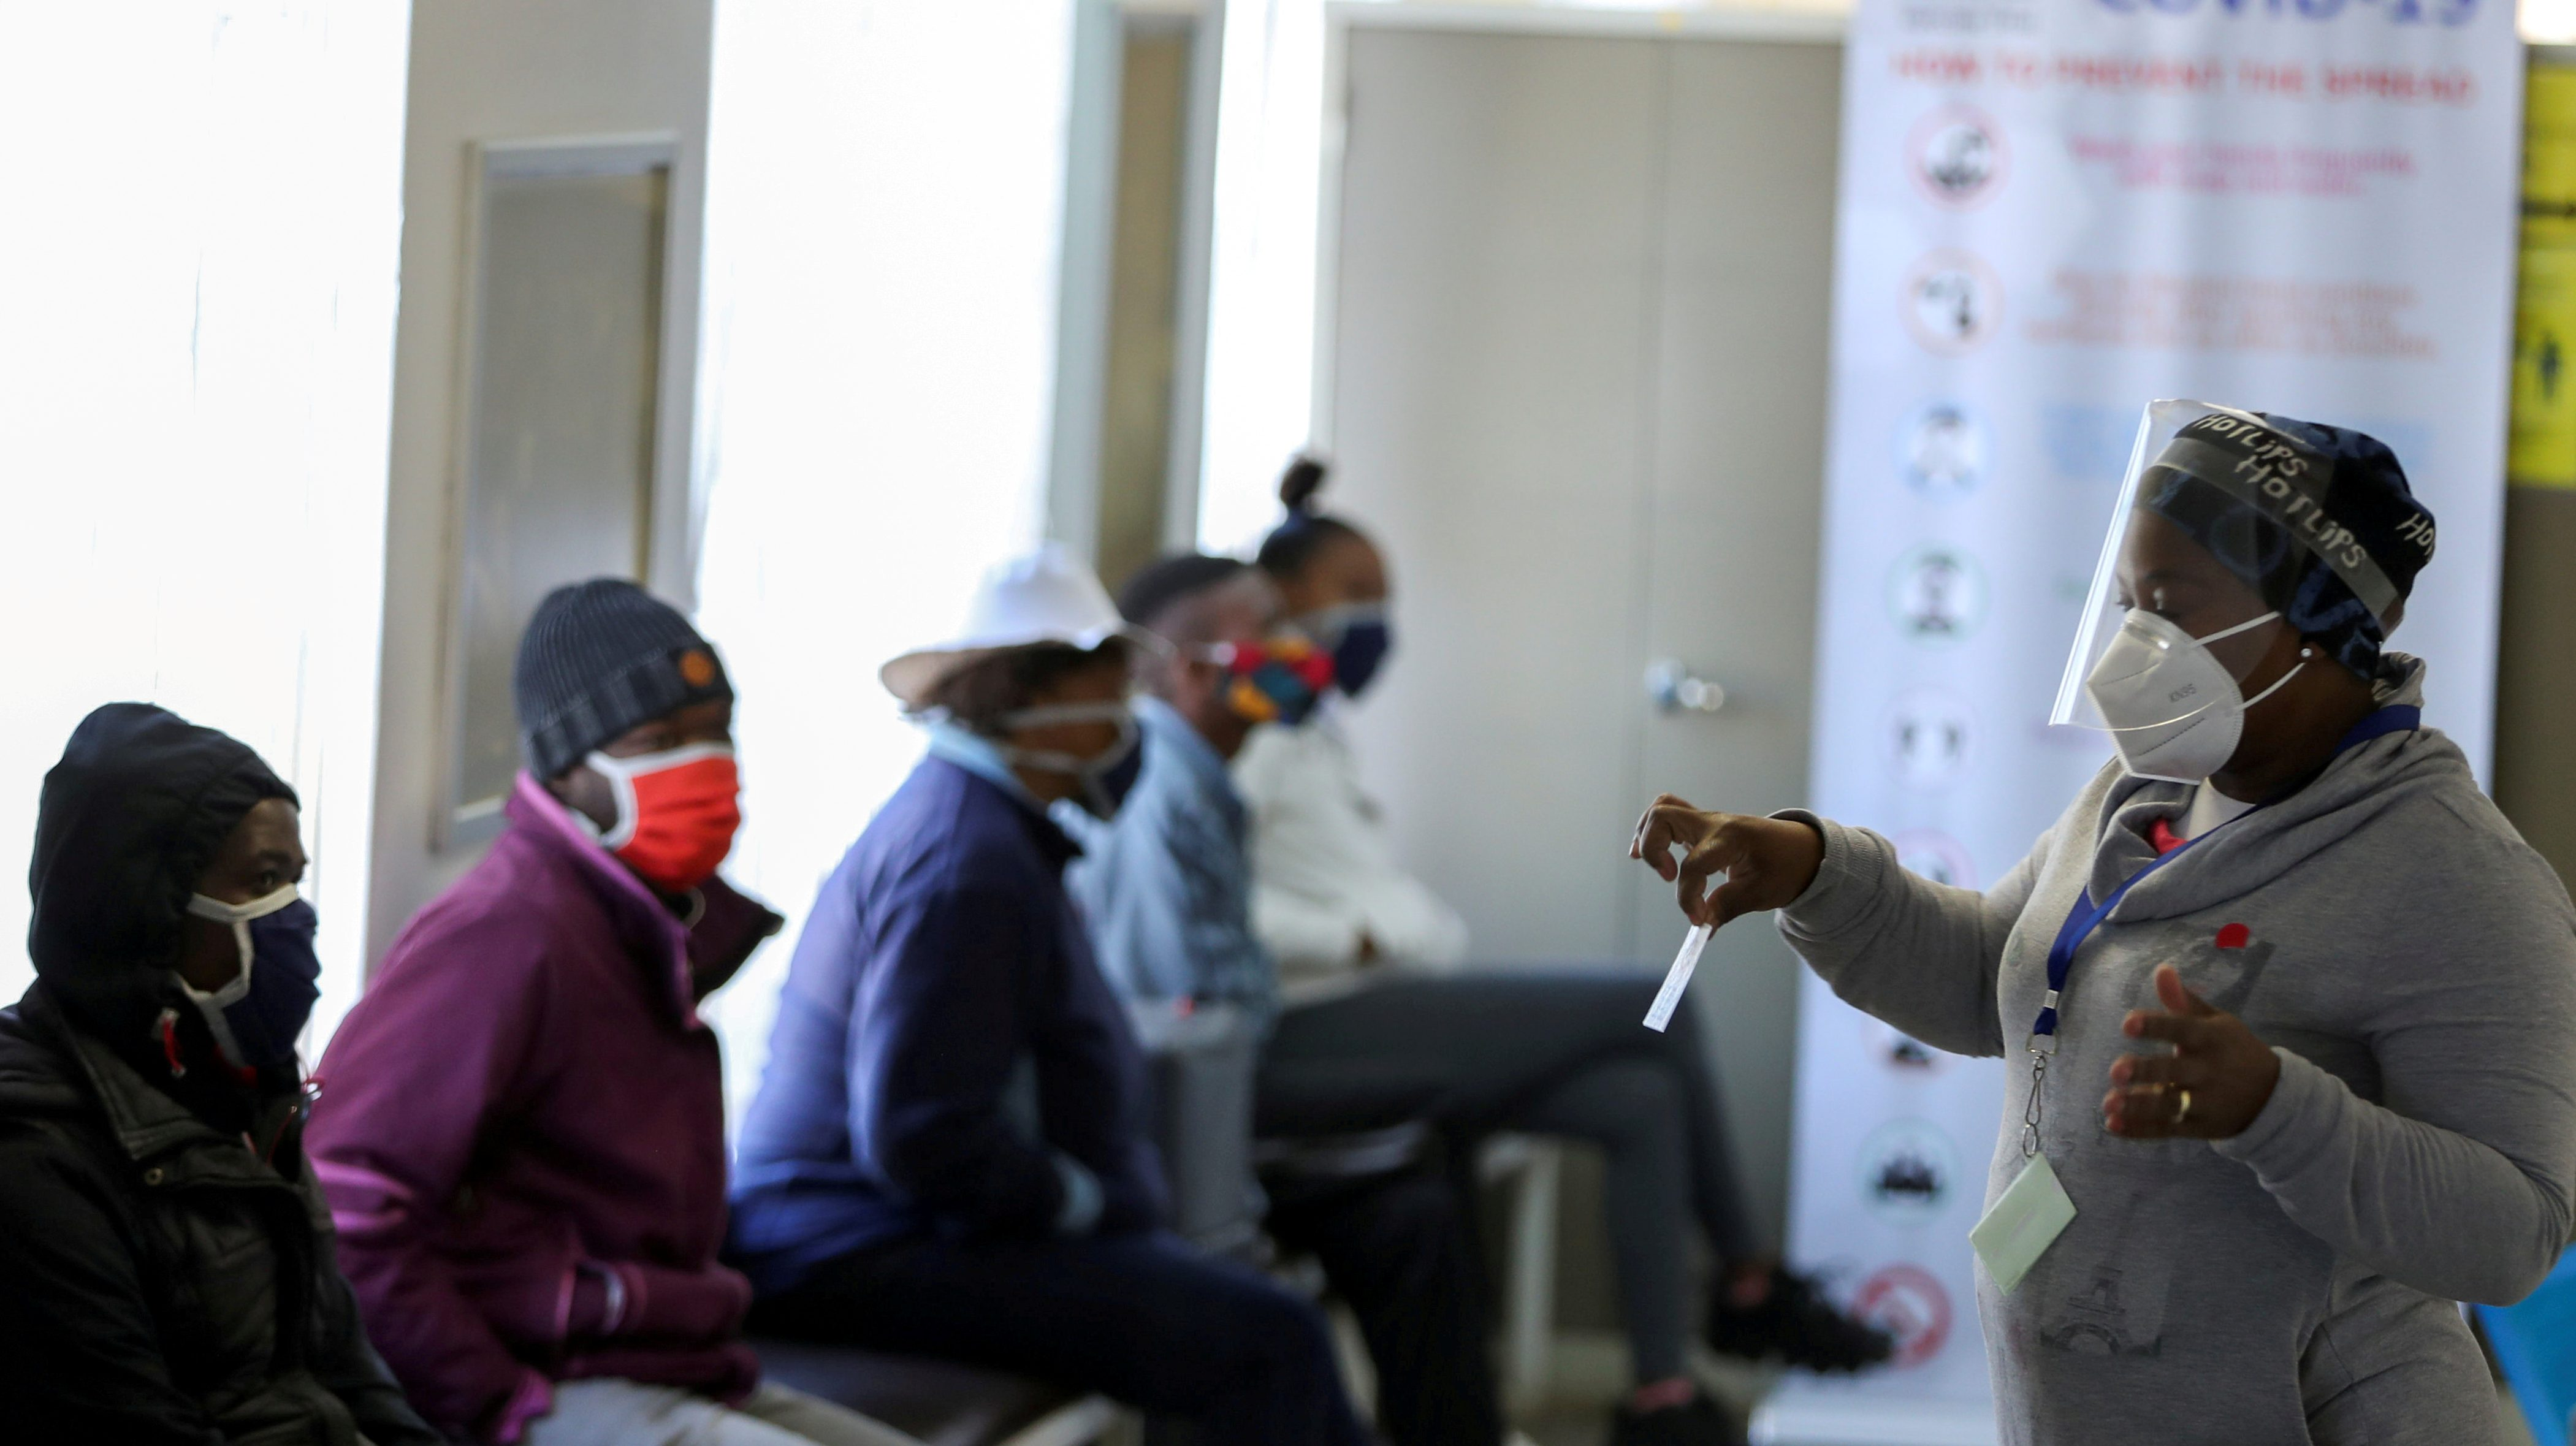 A medical worker talks to volunteers as they wait to receive an injection during the country's first human clinical trial for a potential vaccine against the novel coronavirus, at the Baragwanath hospital in South Africa, June 2020.